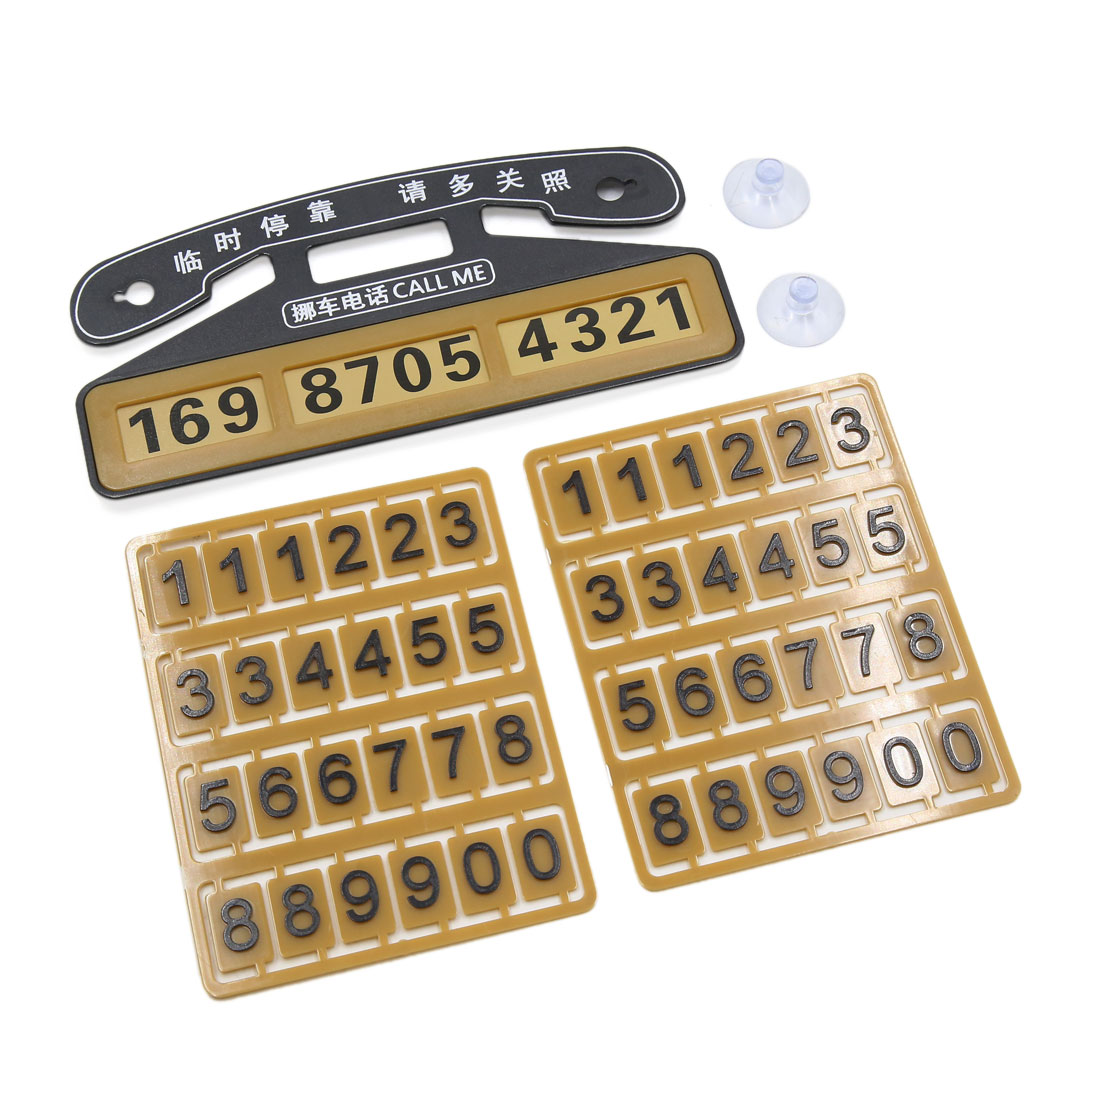 Dark Yellow Puzzle Suction-Cup Parking Notification Phone Number Card for Car